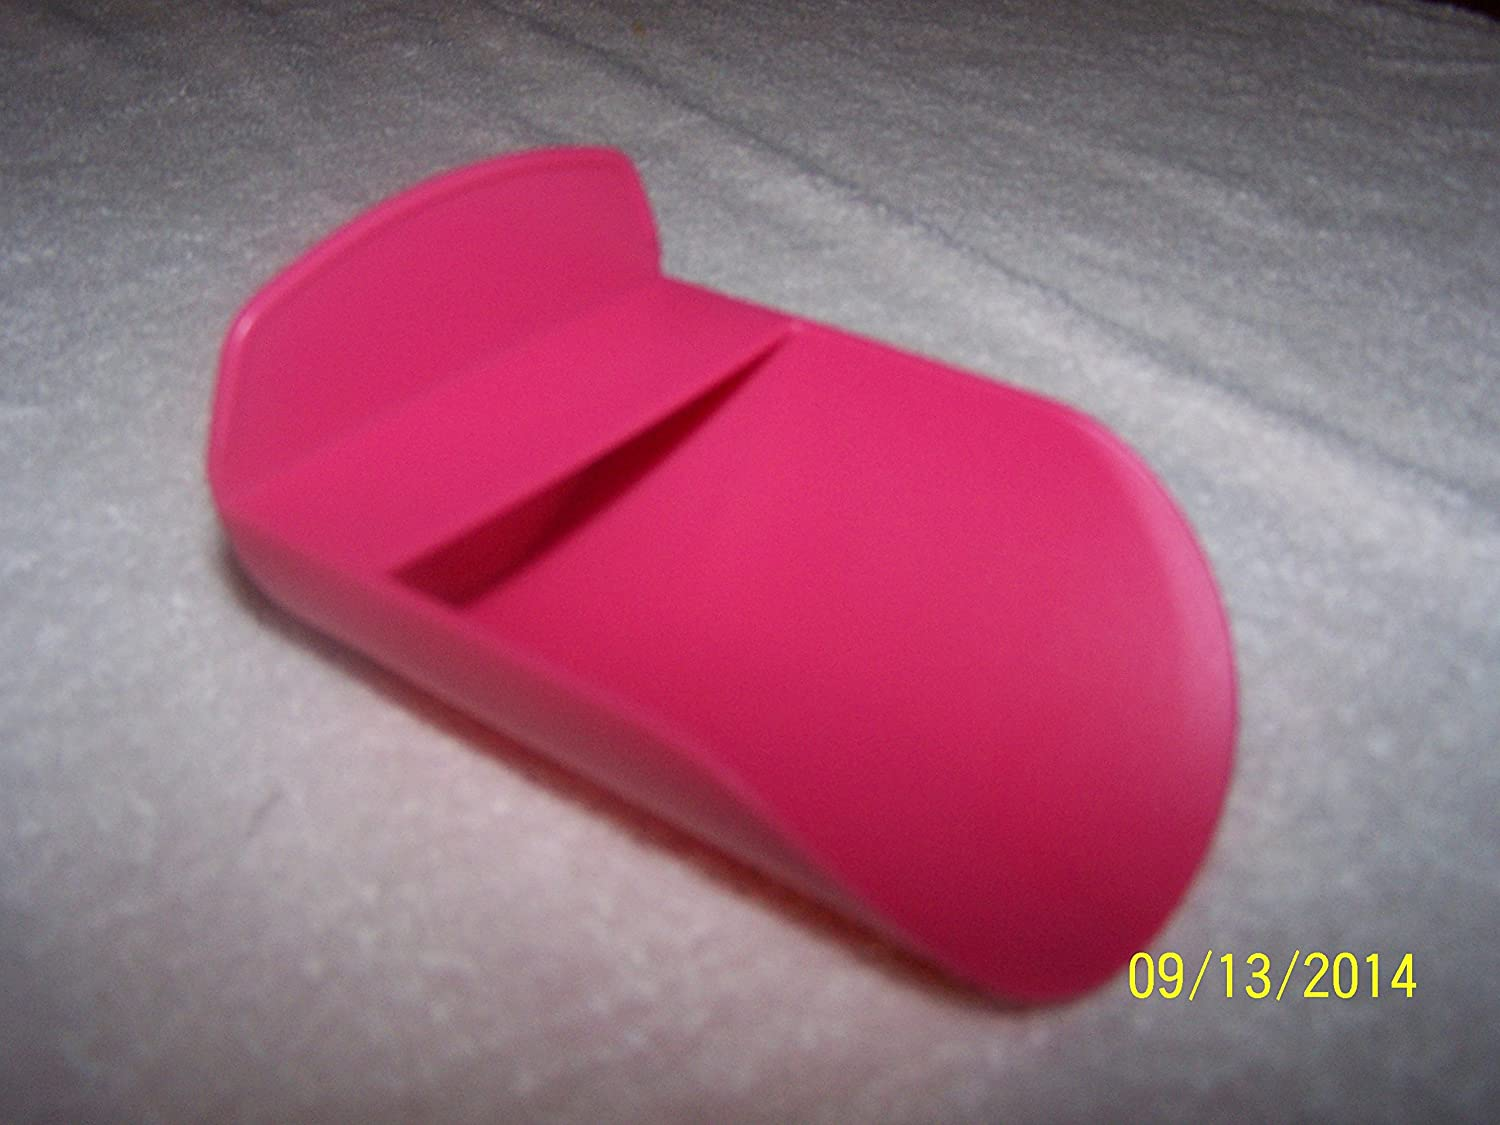 Tupperware Rocker Canister Scoop Rose Color by Tupperware